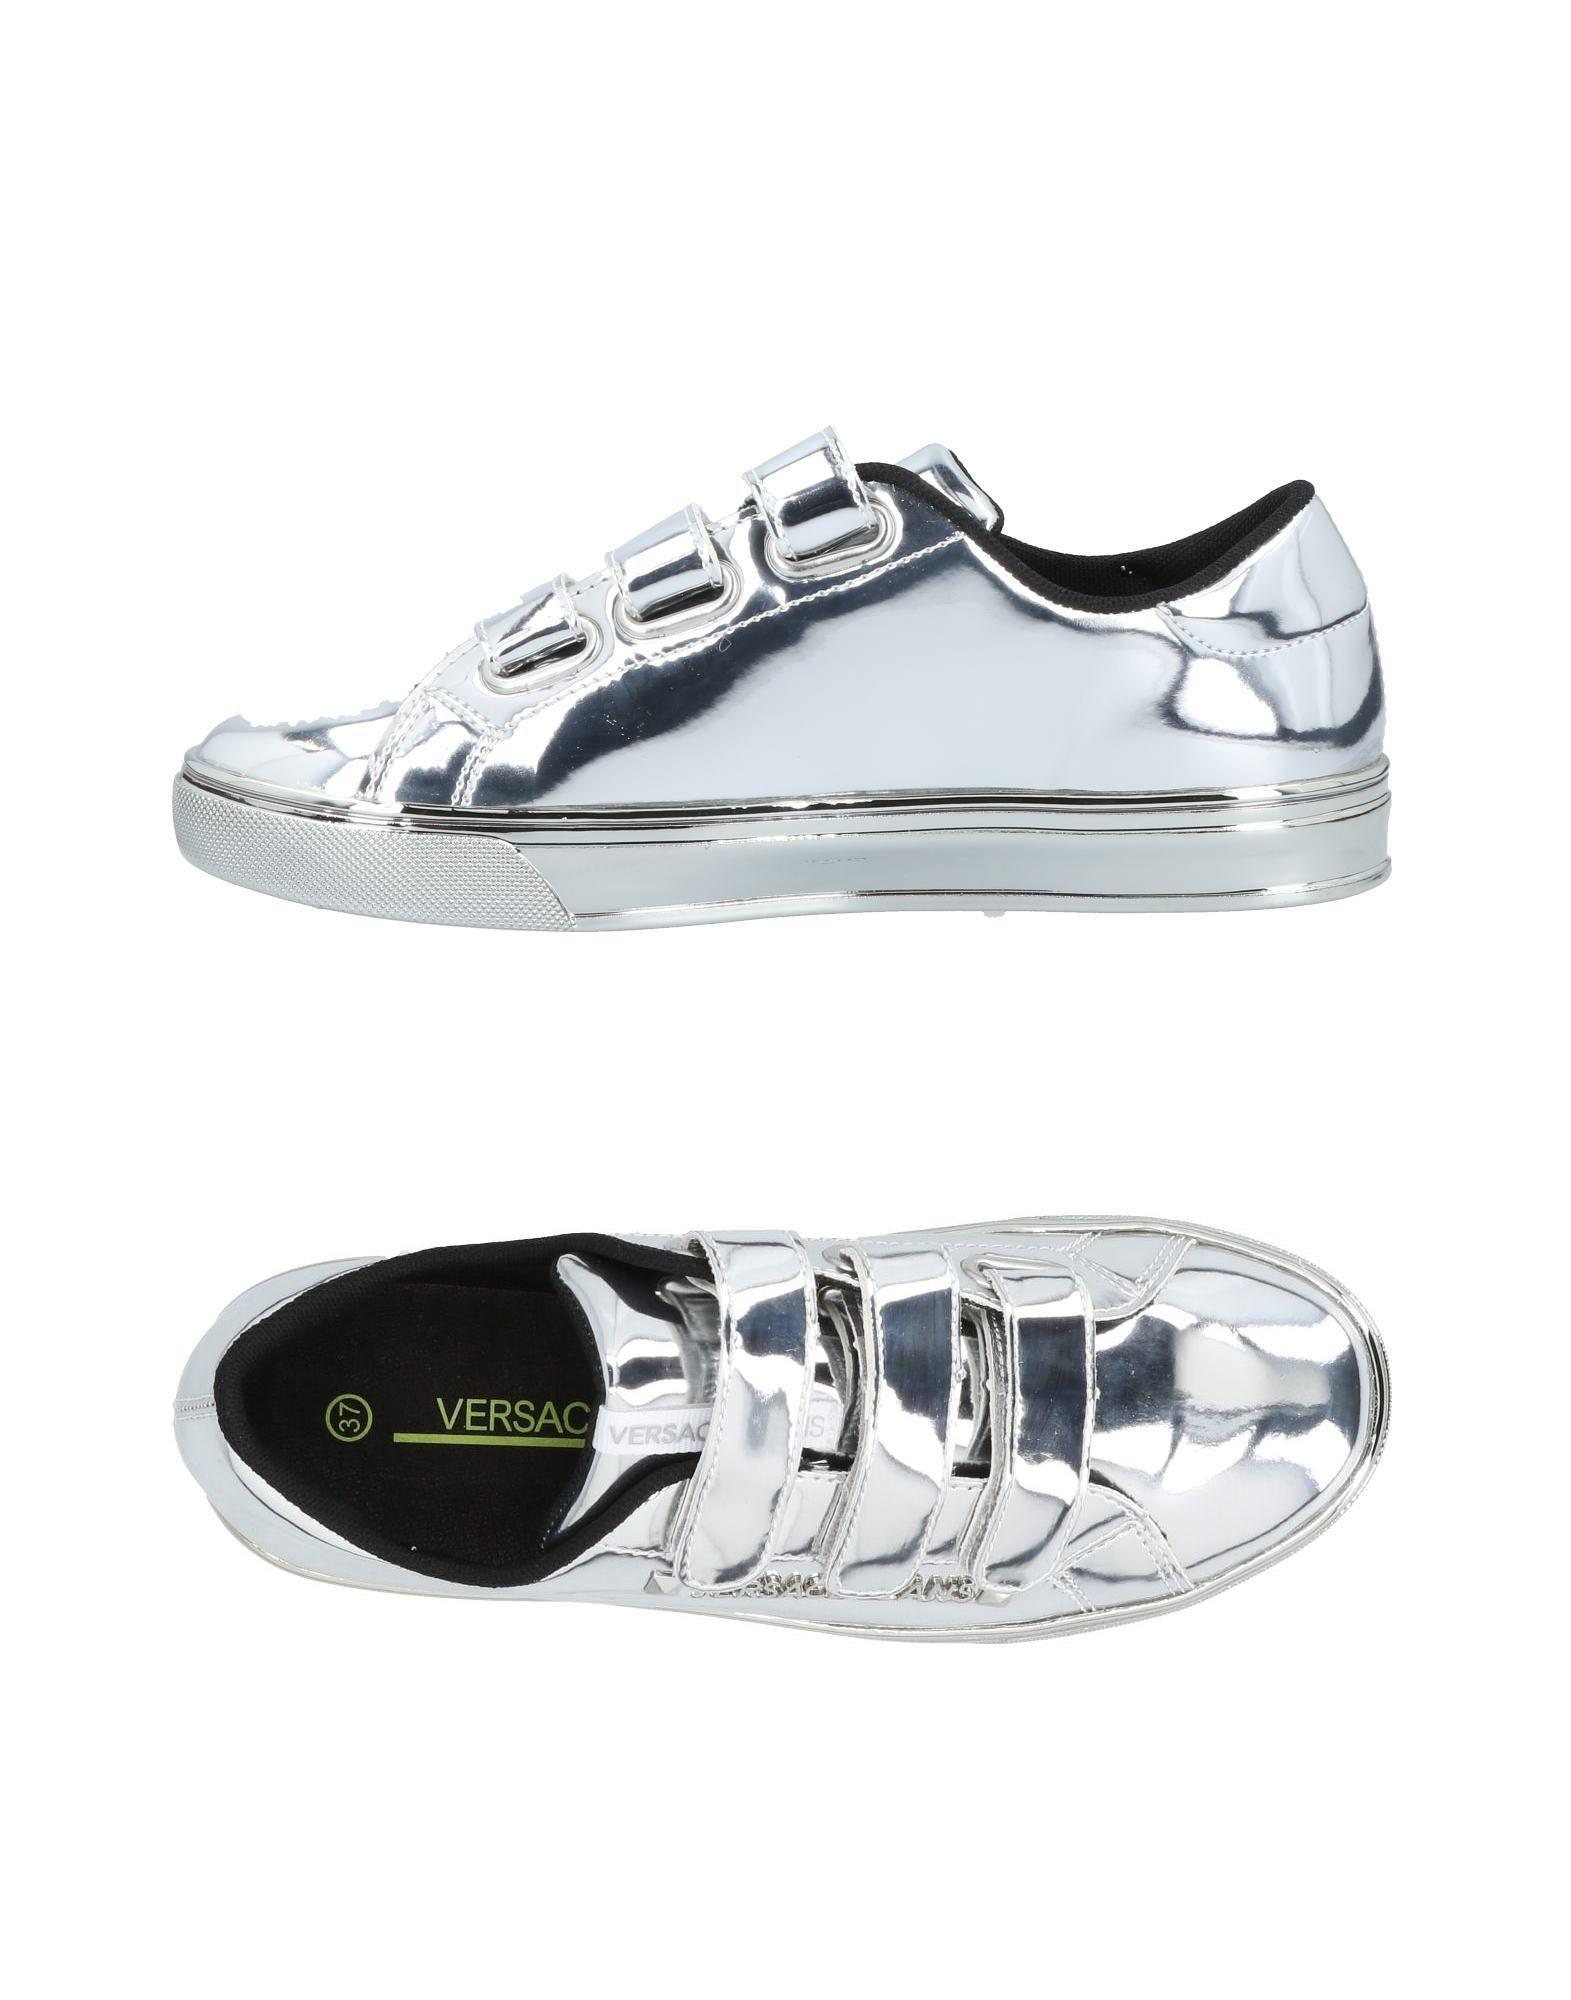 4a6125d7092 Versace Jeans Sneakers In Silver   ModeSens